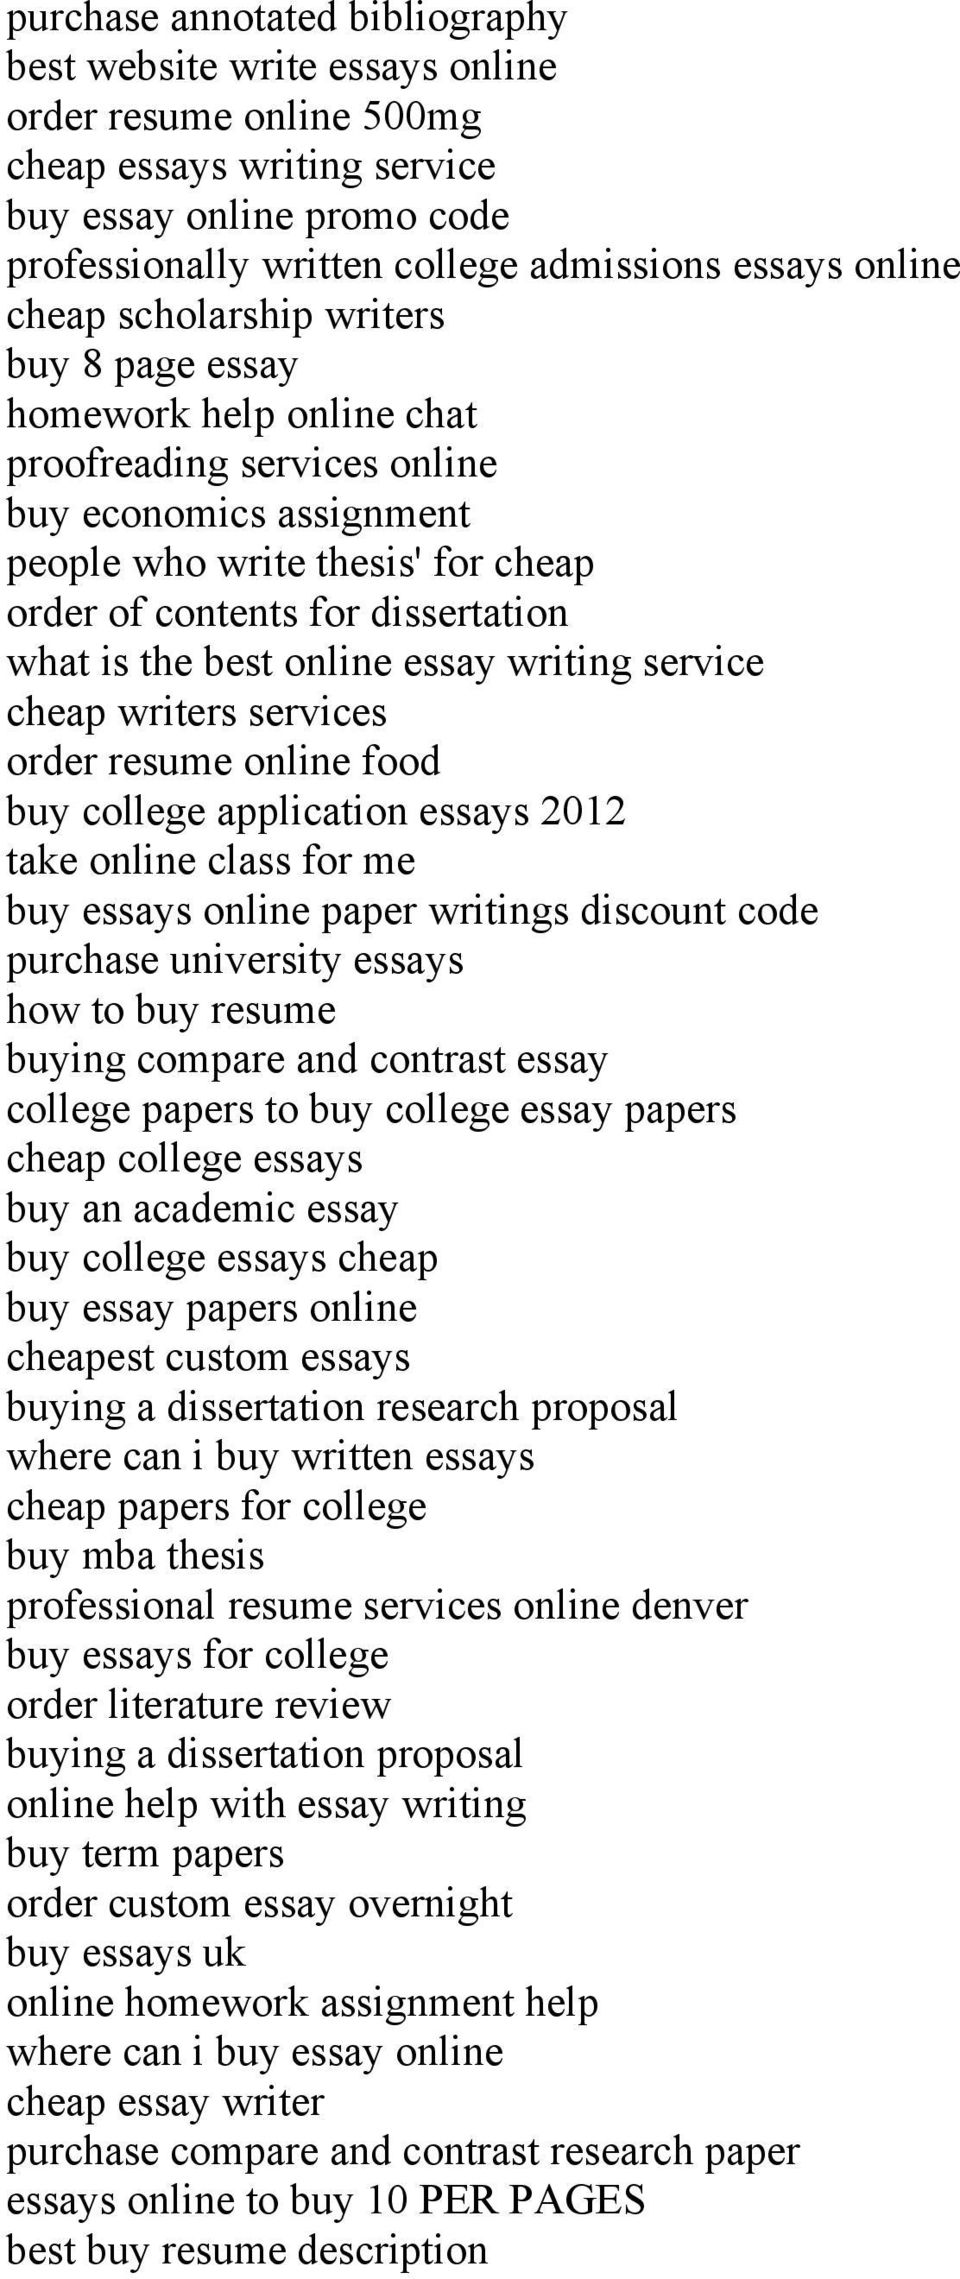 what is the best online essay writing service cheap writers services order resume online food buy college application essays 2012 take online class for me buy essays online paper writings discount